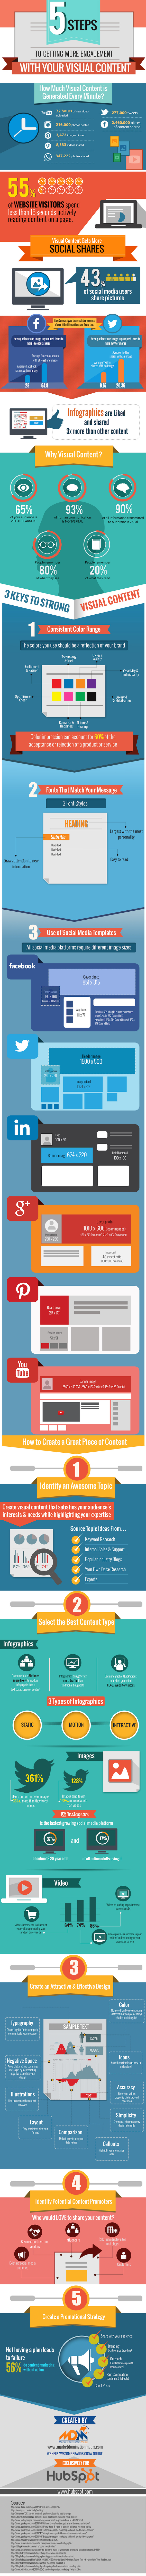 How to Increase Your Visual Content Engagement